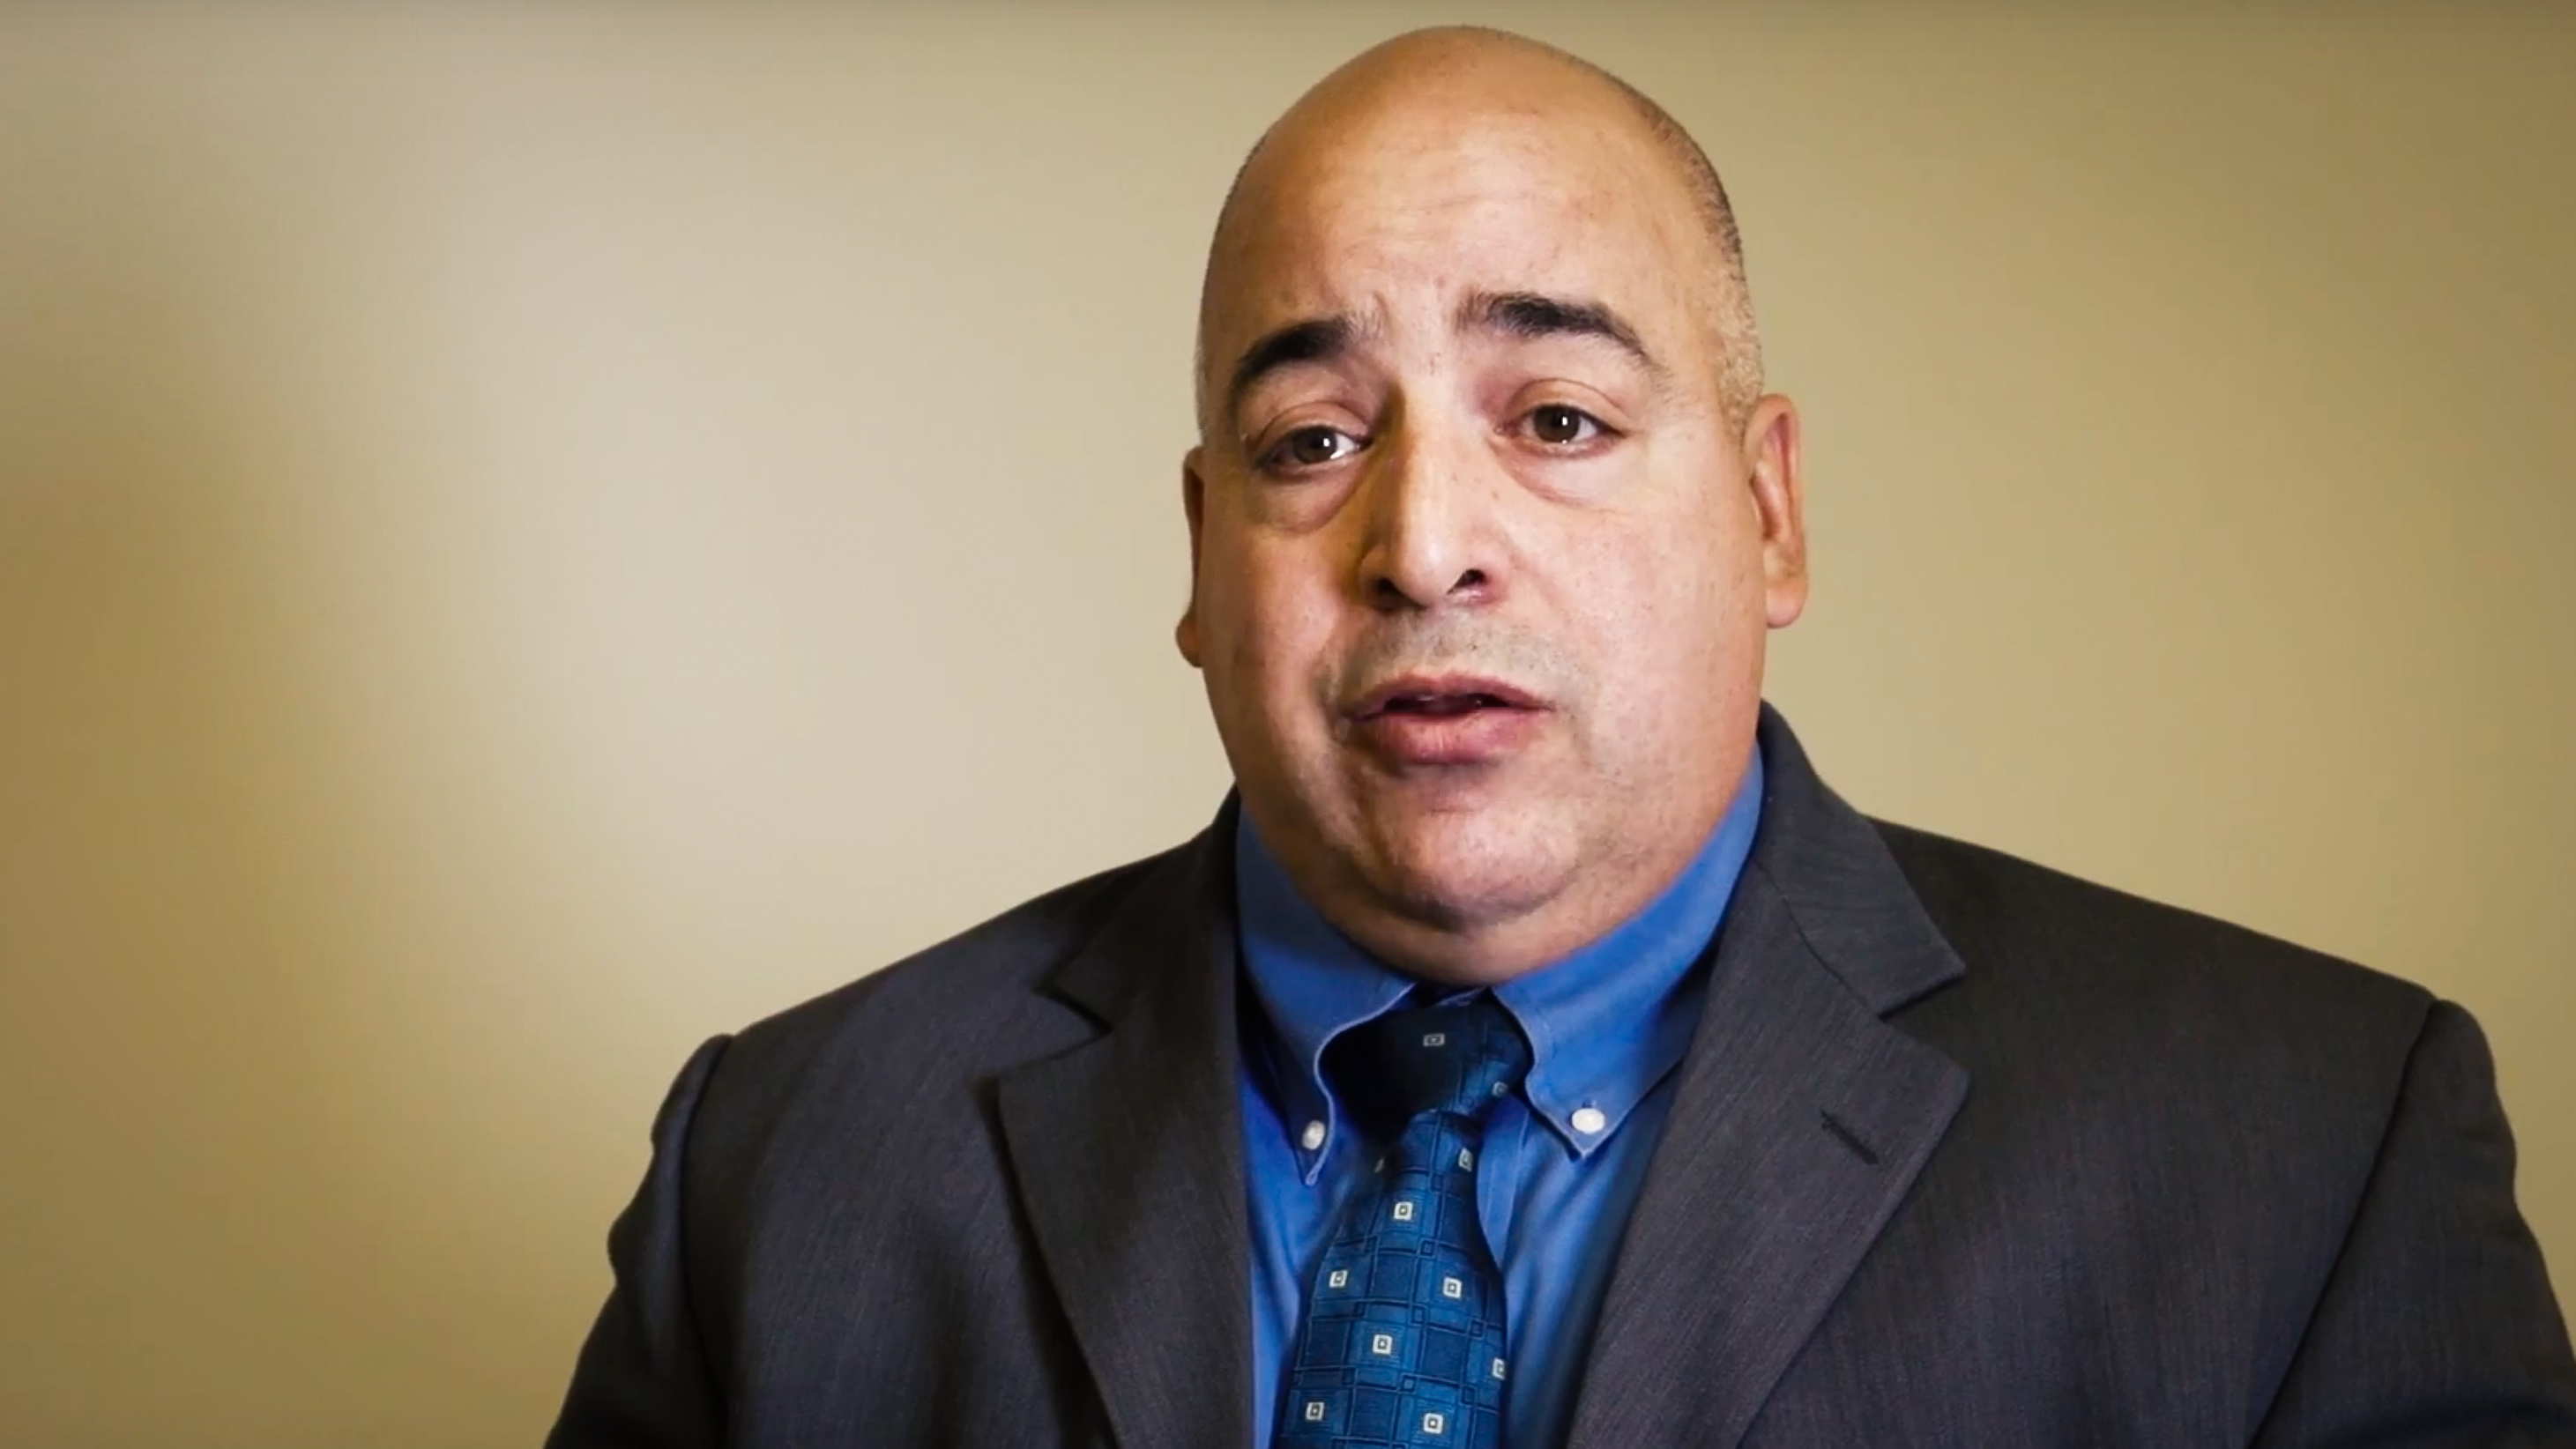 Dennis Kefalas appears in a still from a promotional video released by the City of Yellowknife in 2017